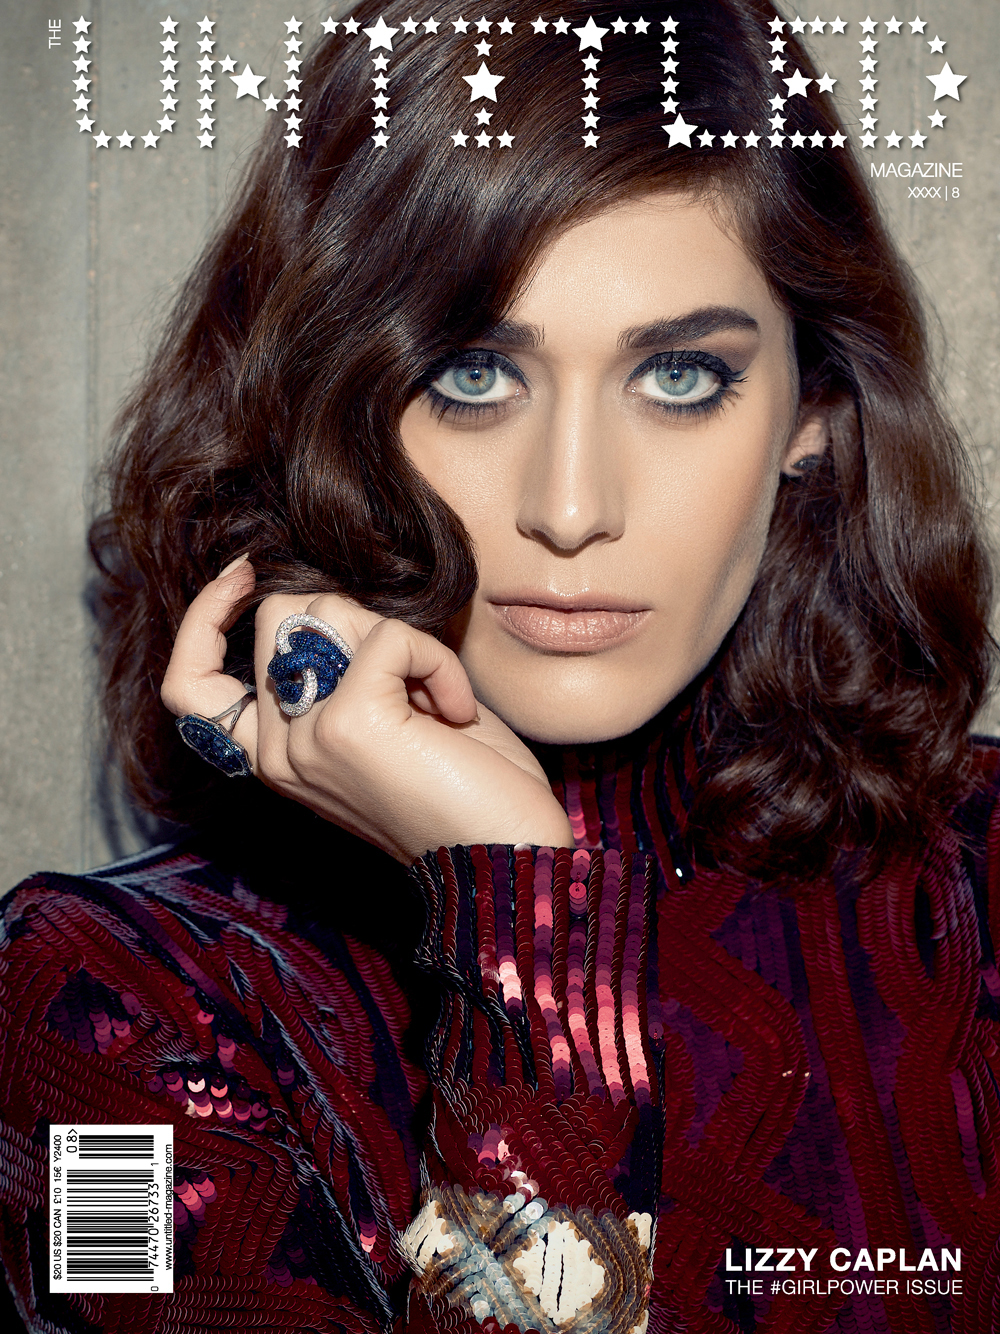 The-Untitled-Magazine-Issue-8-Lizzy-Caplan-Cover-LR.jpg